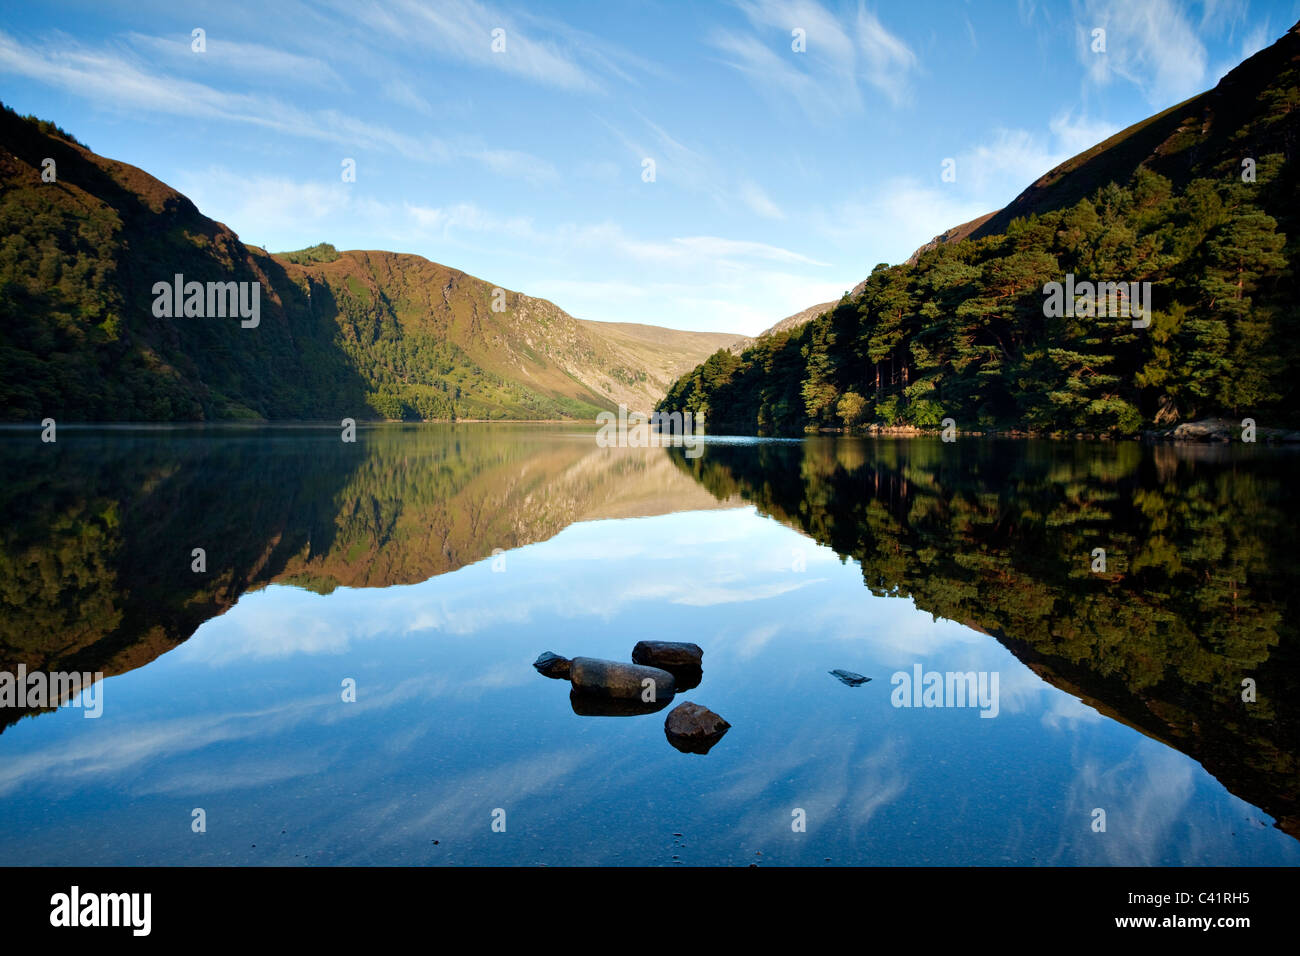 Morning reflections in Upper Lake, Glendalough, Wicklow Mountains National Park, County Wicklow, Ireland. - Stock Image